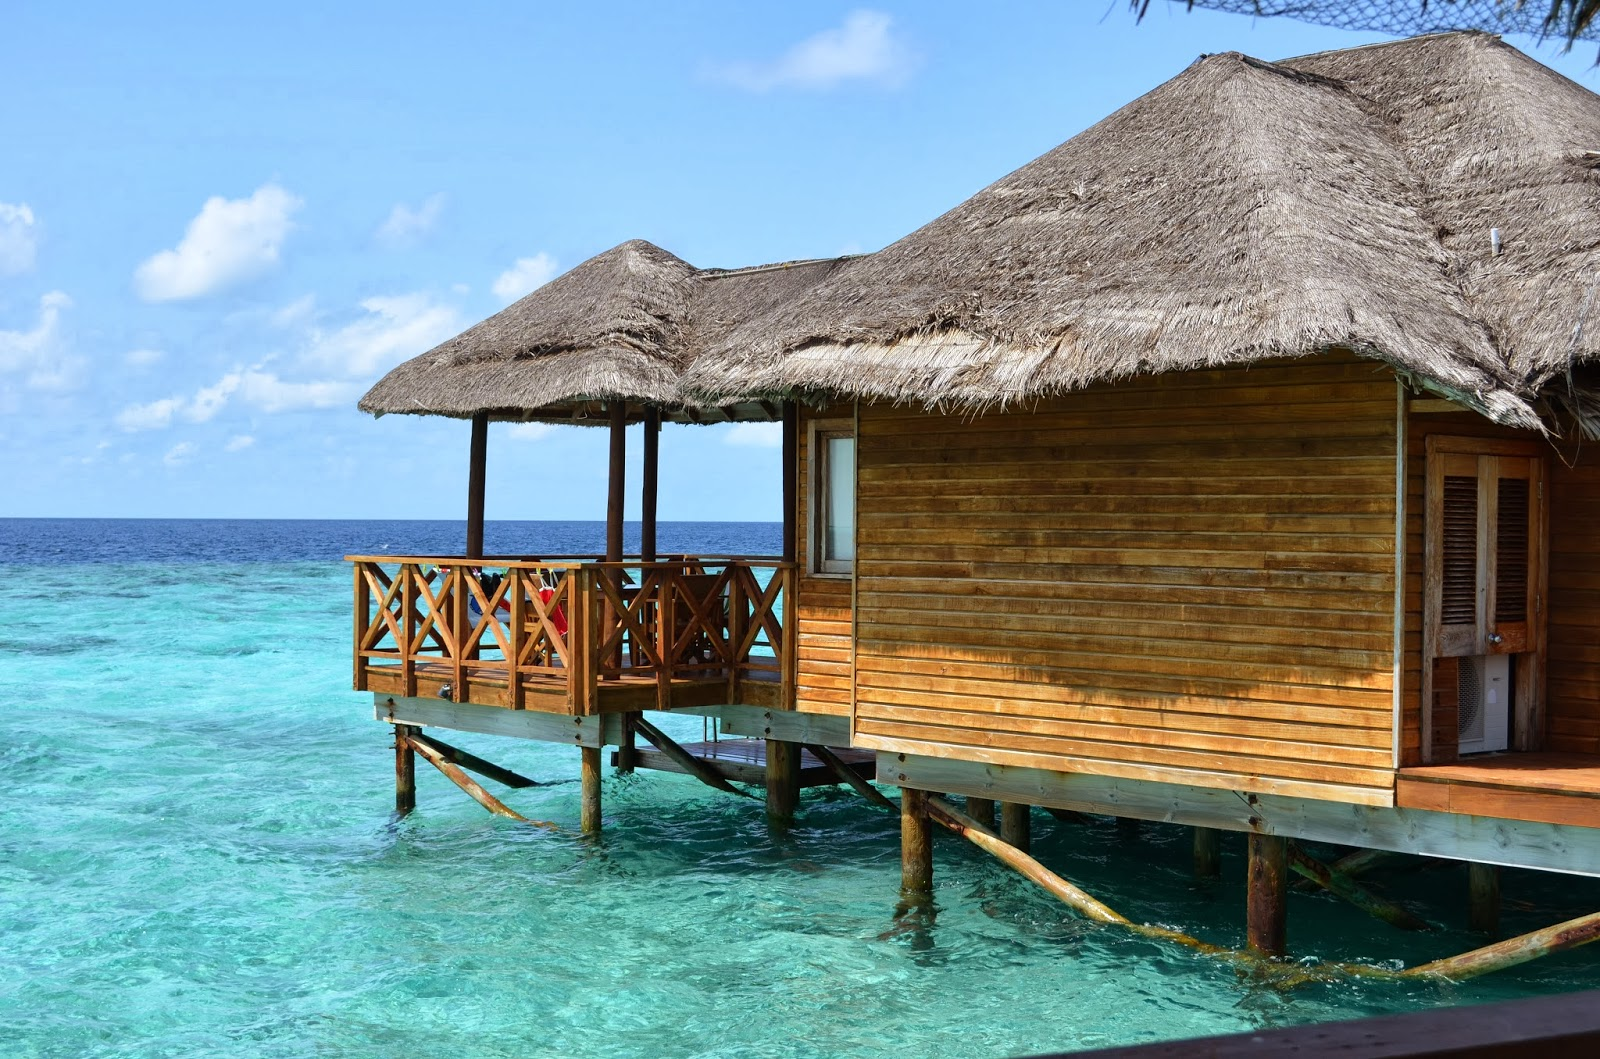 Excursions I Choose Fihalhohi Island Resort For My Hoping Trip The Beach At Is Amazing Snorkeling Experience House Reef Very